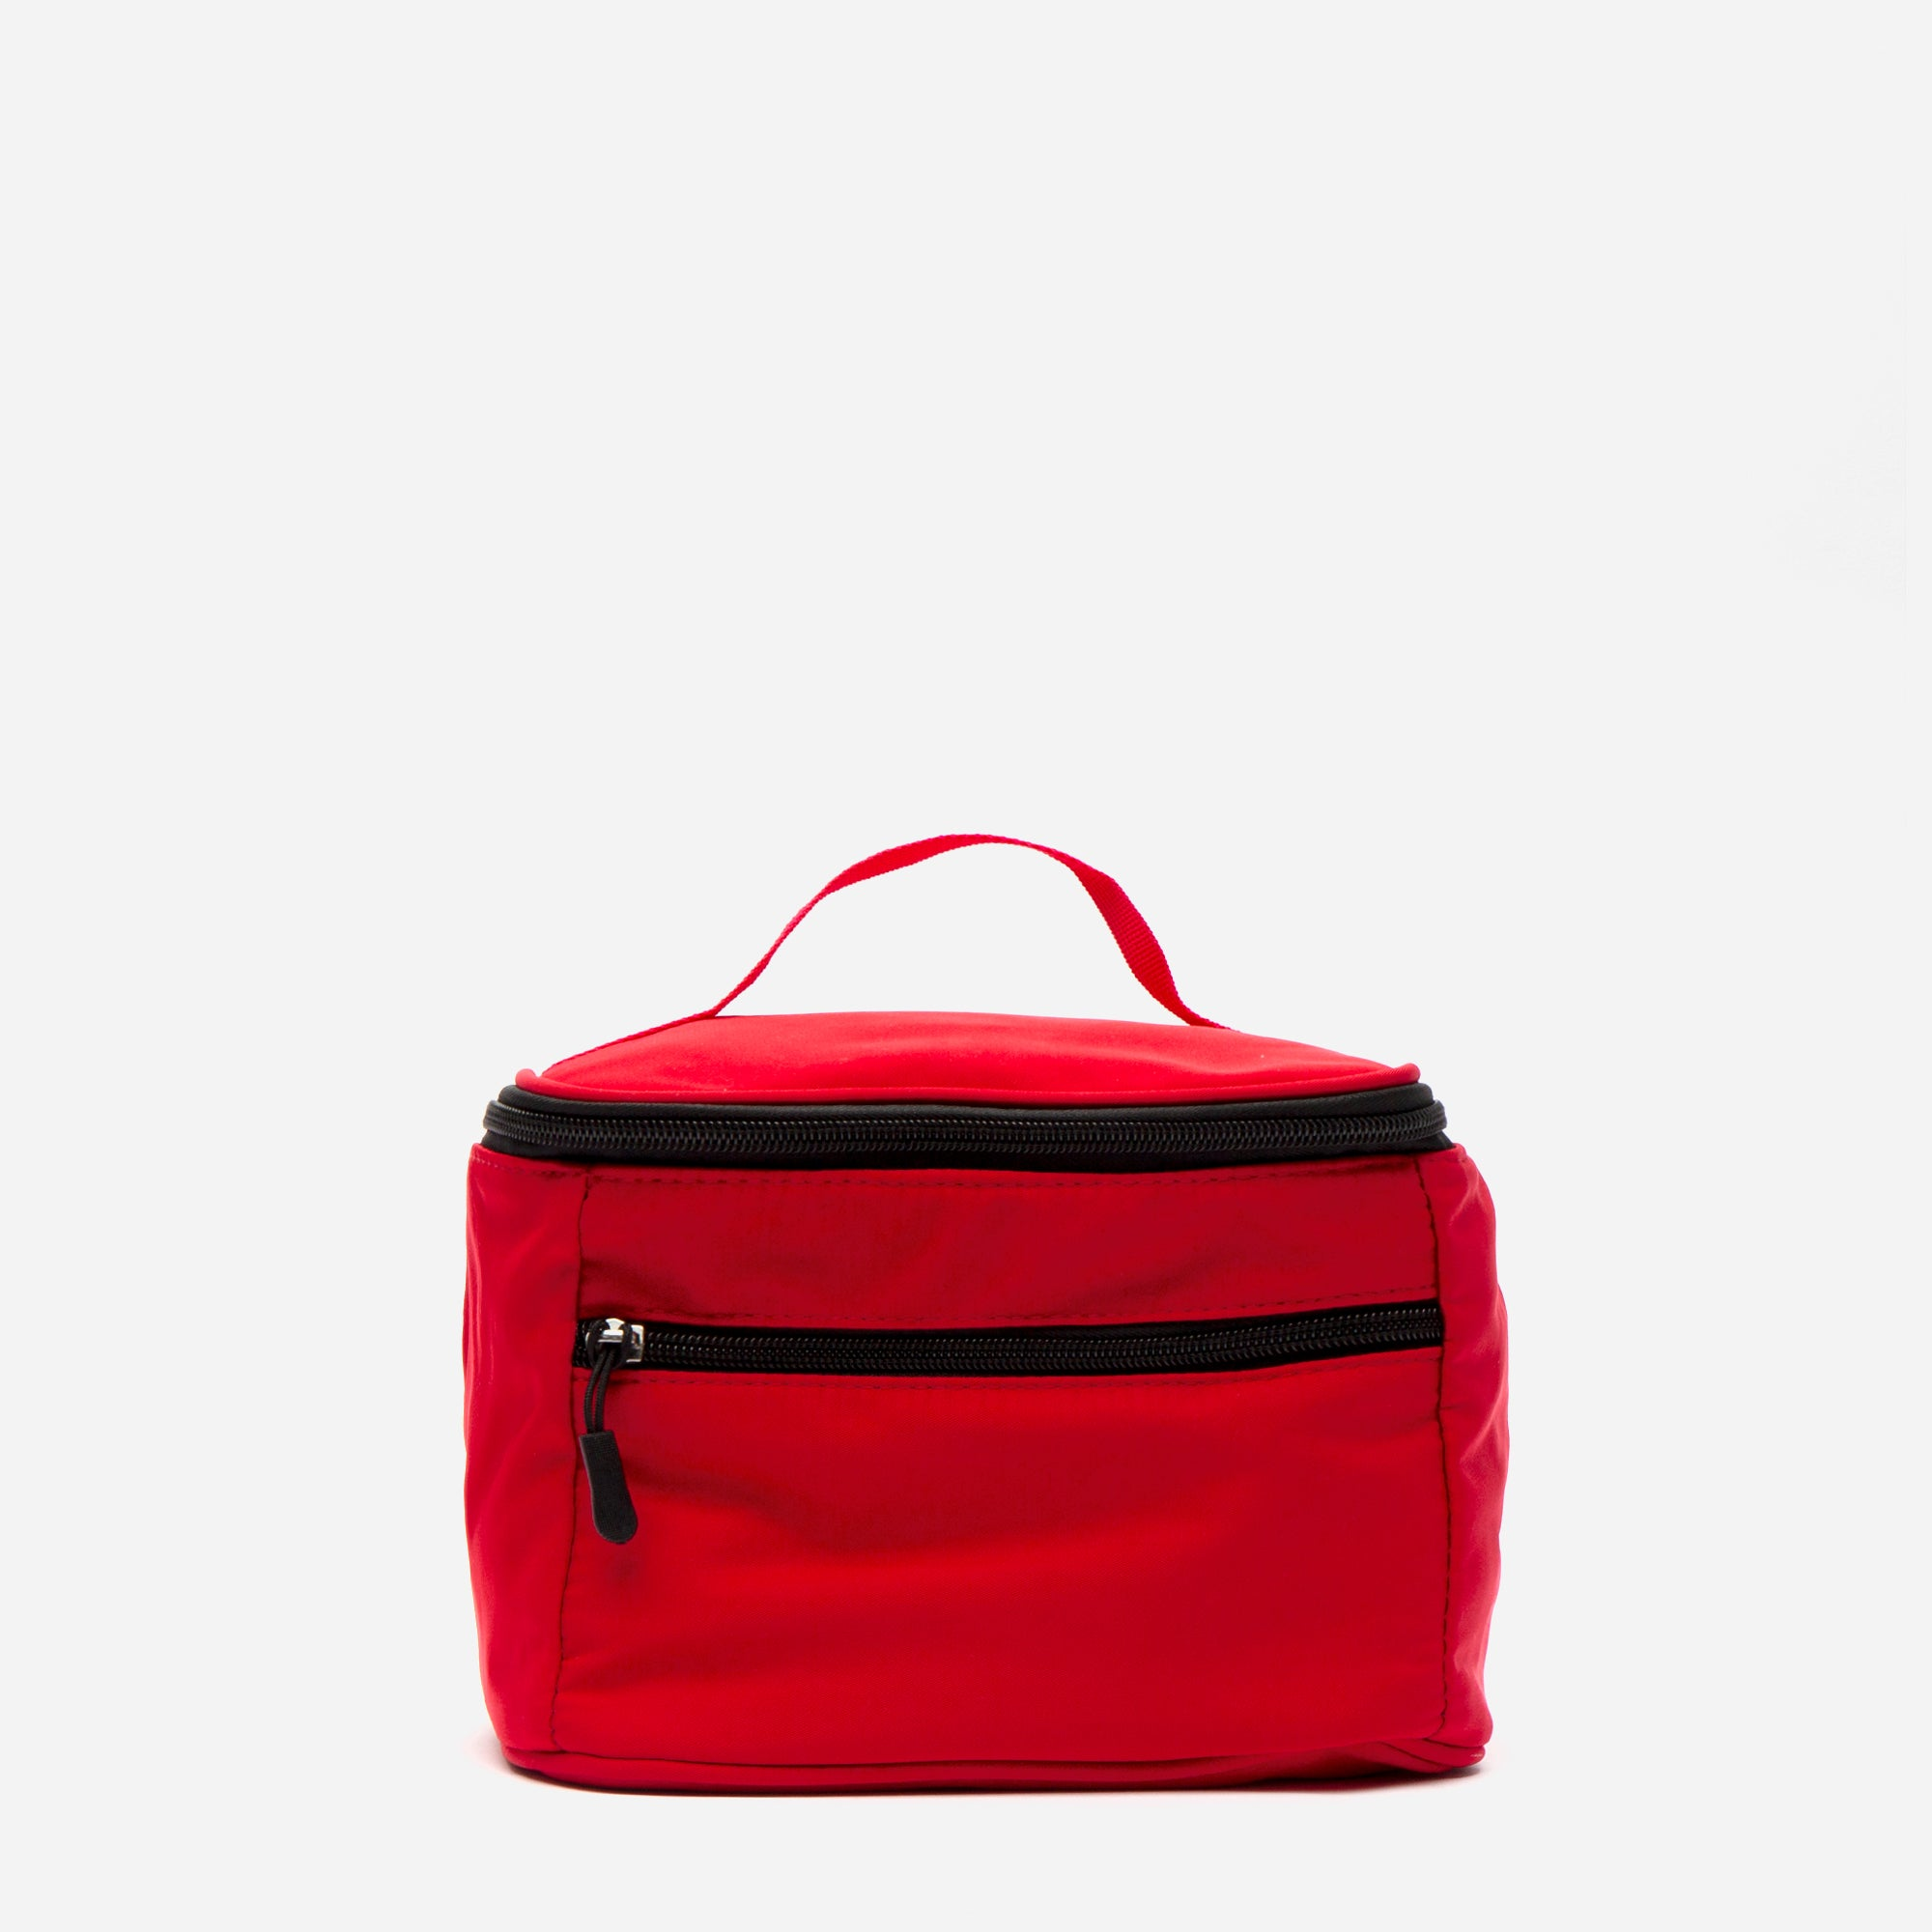 Foldaway Nylon Travel Cosmetic Red - Frances Valentine